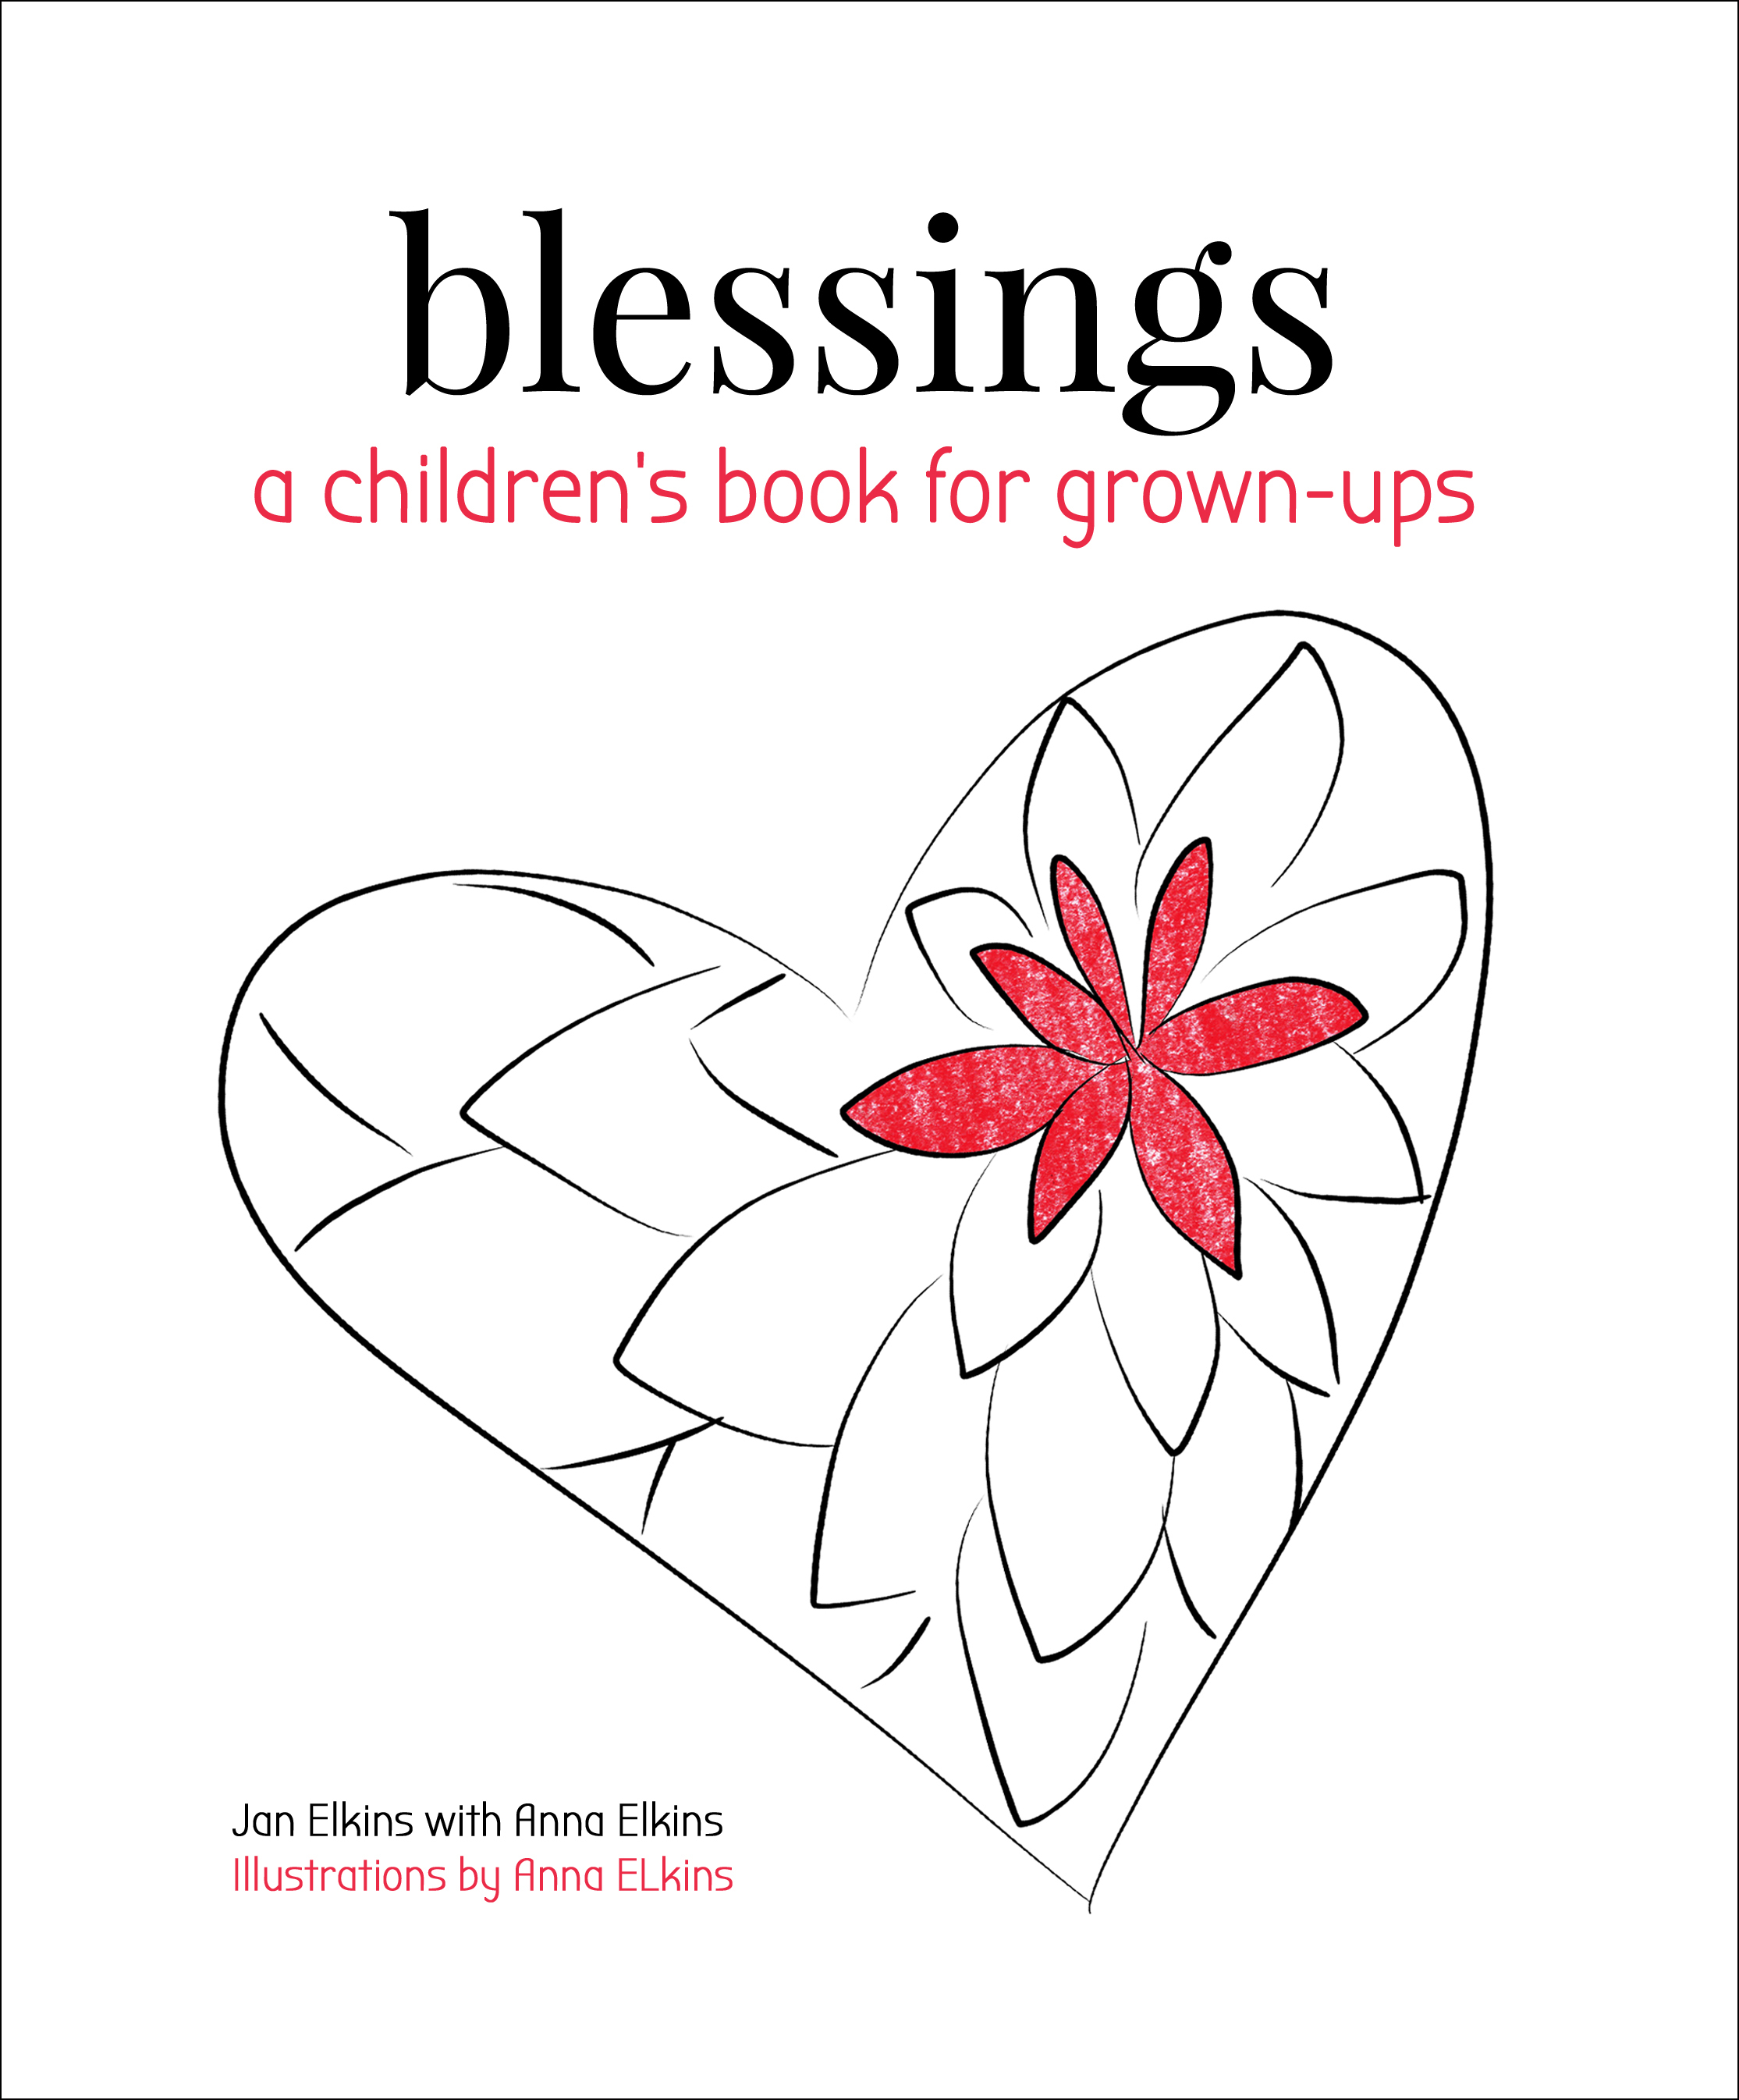 Blessings: A Children's Book for Grown-ups - by Anna Elkins